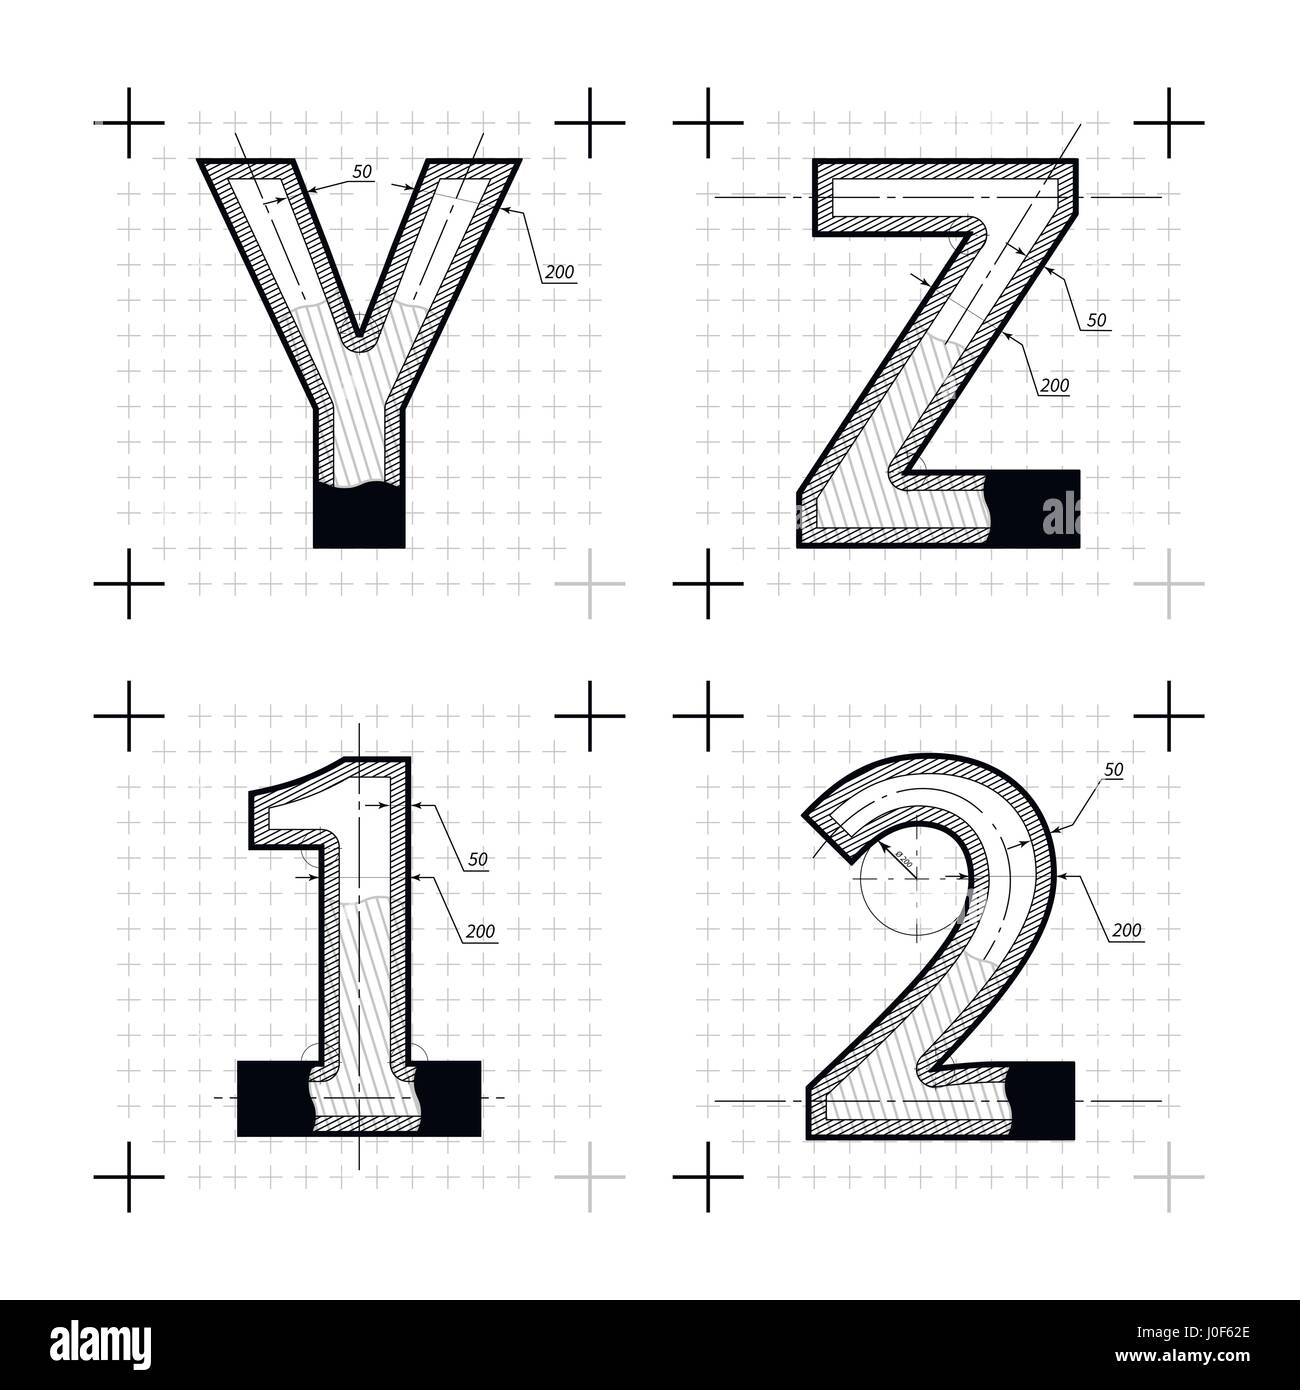 Architectural sketches of y z 1 2 letters blueprint style font on architectural sketches of y z 1 2 letters blueprint style font on white malvernweather Gallery